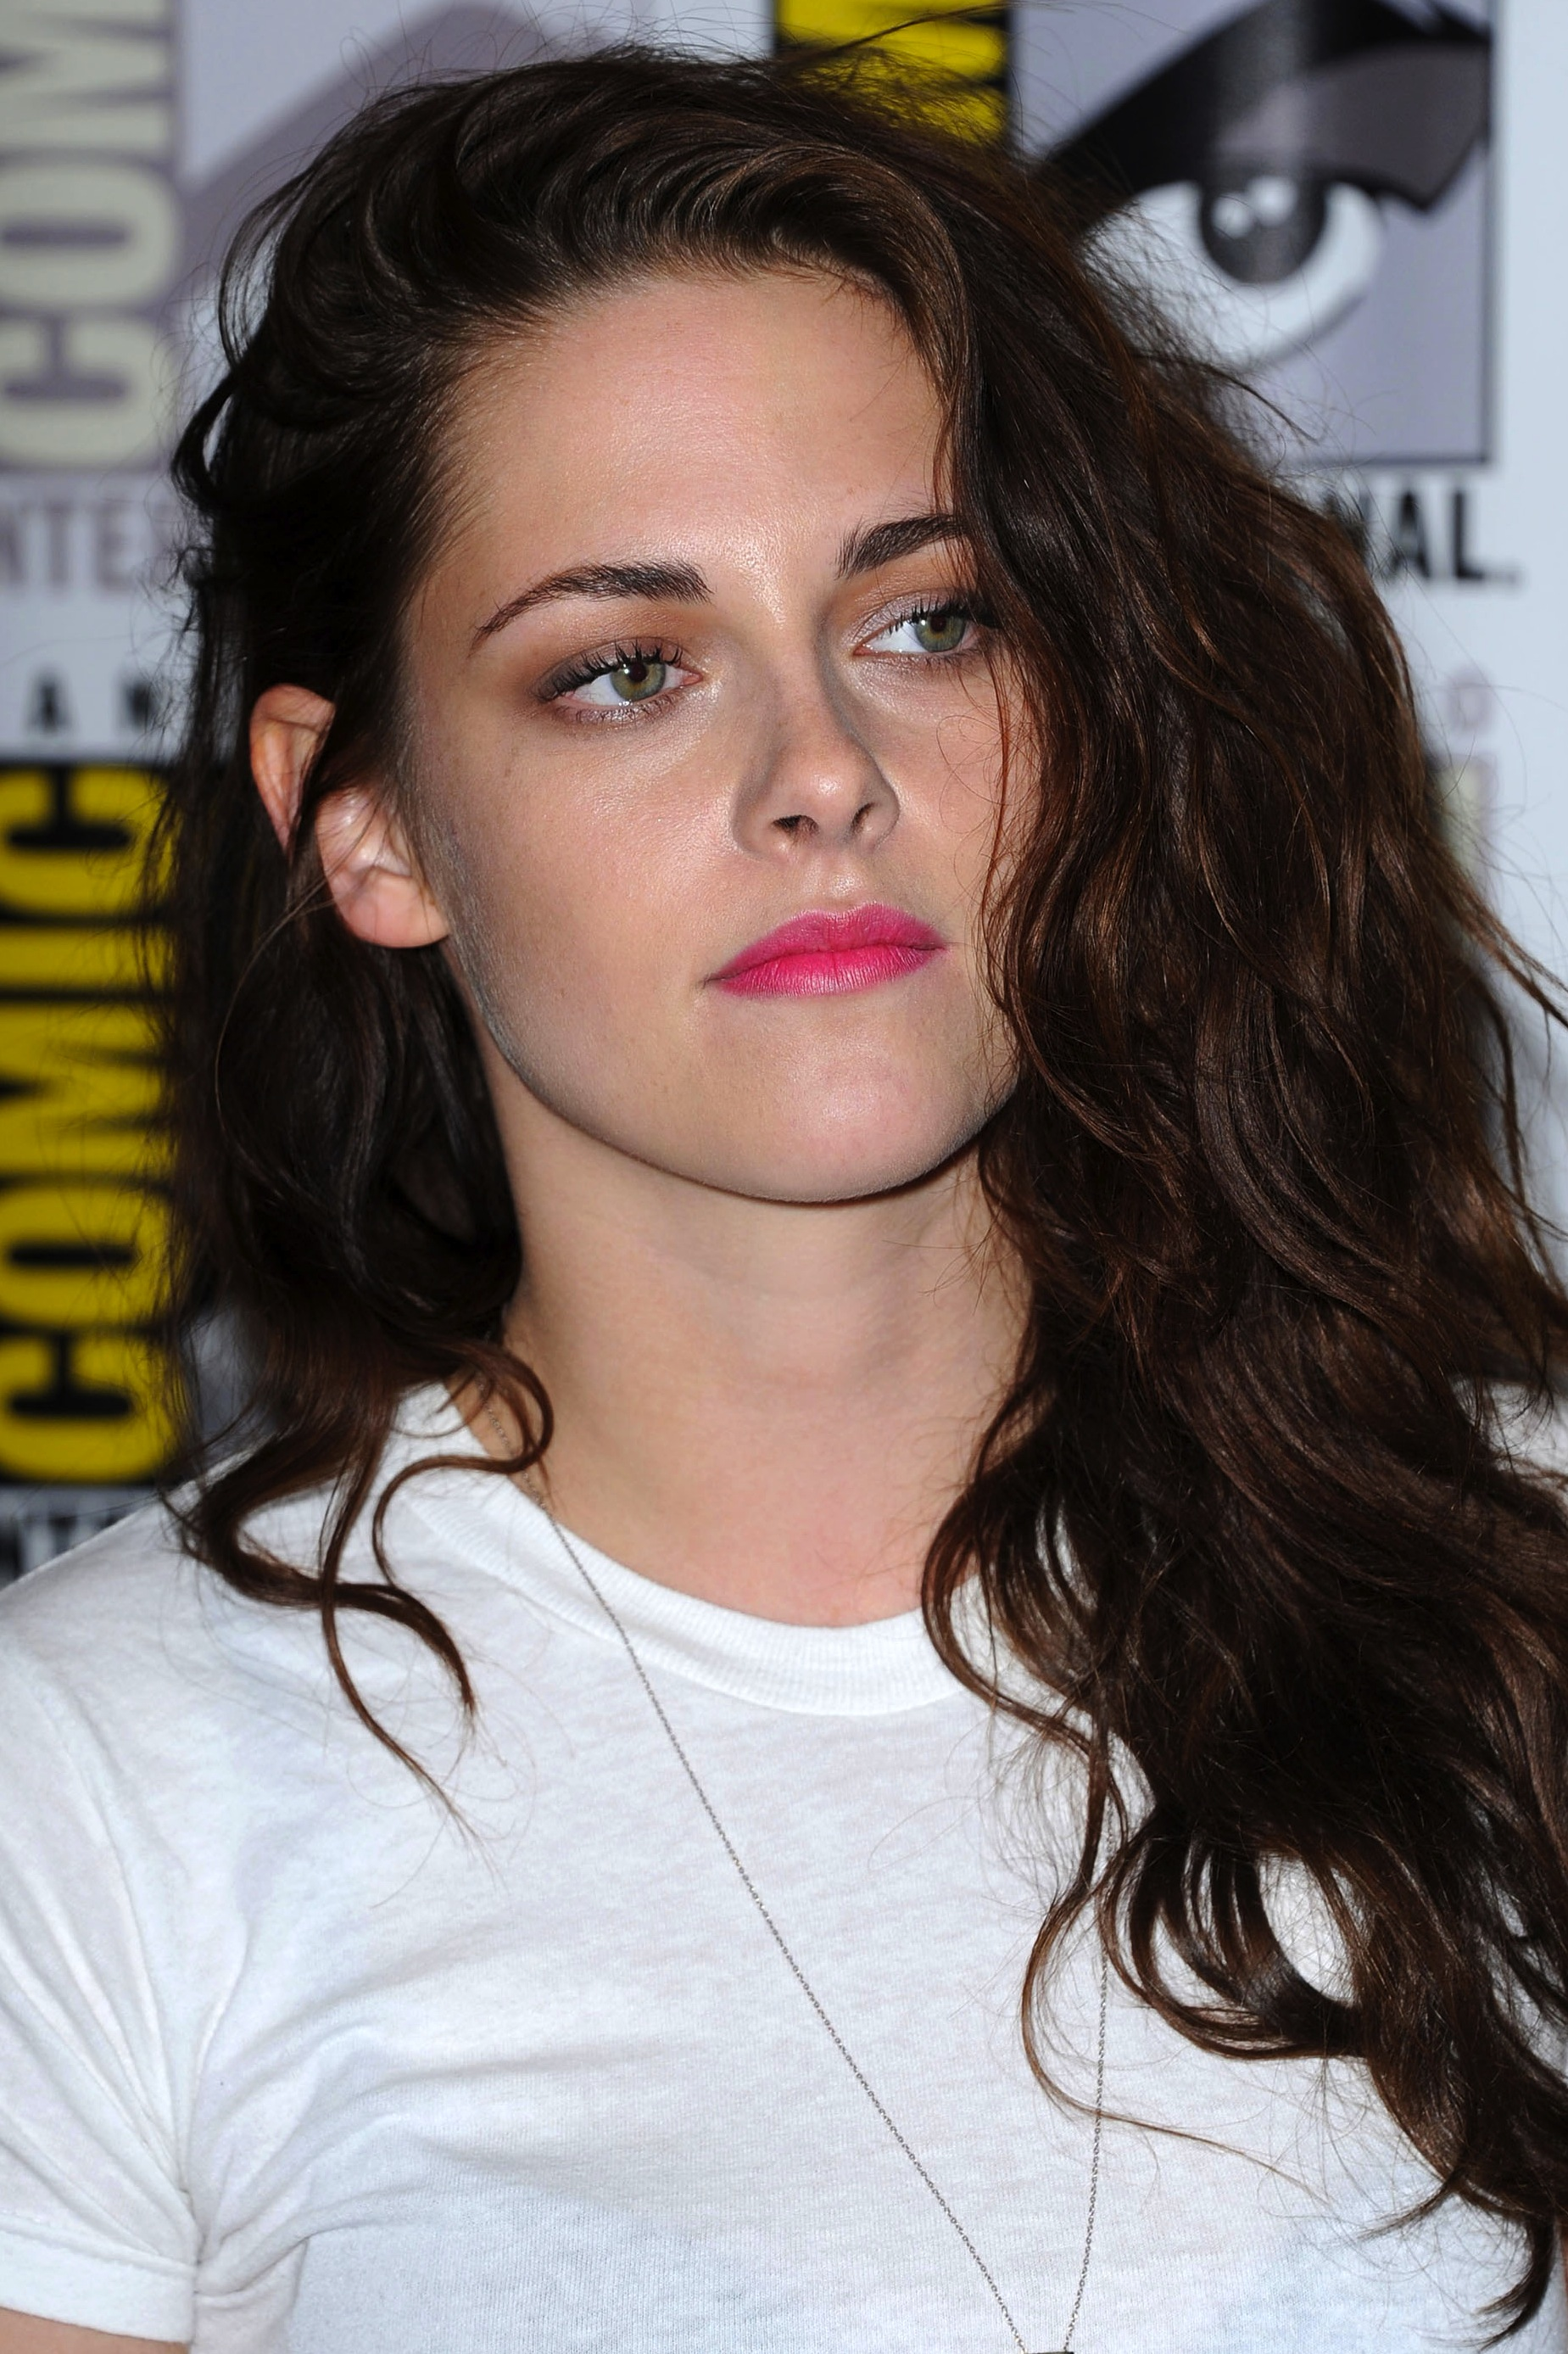 Kristen Stewart knows how to mix things up when it comes to her hairstyles!